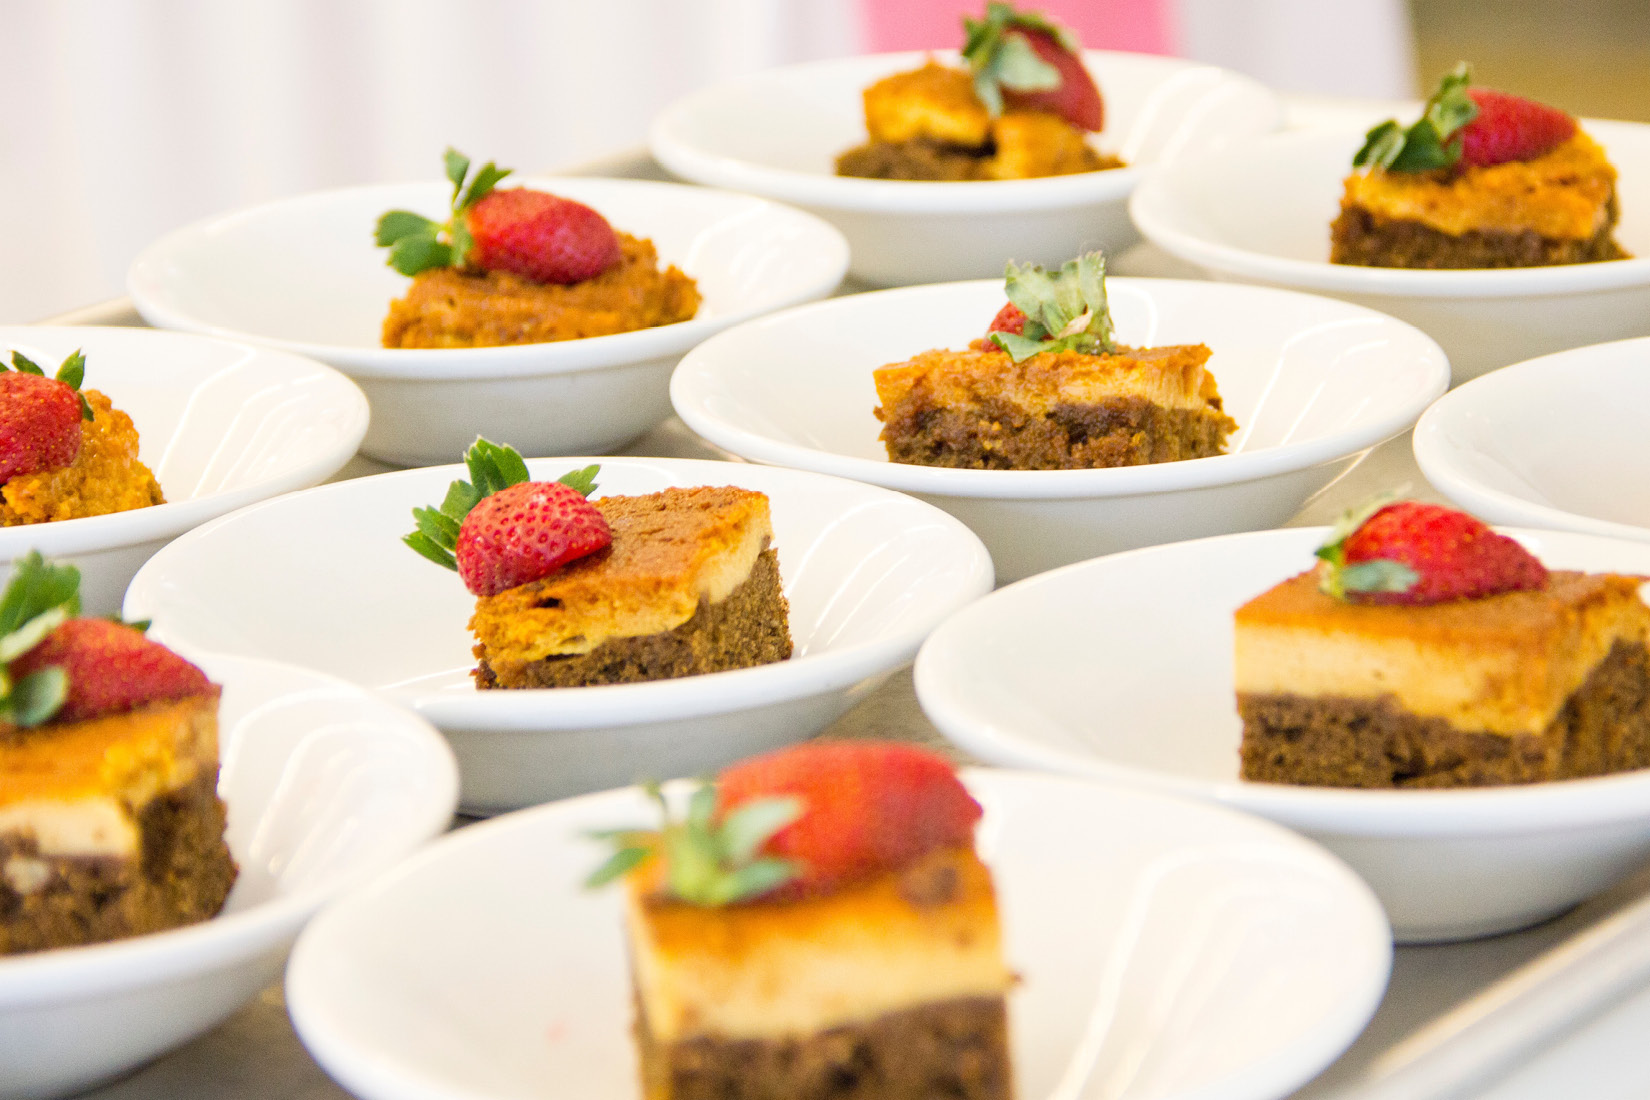 Contract Catering - We stock a wide variety of products for food prep, production and elegant presentation.